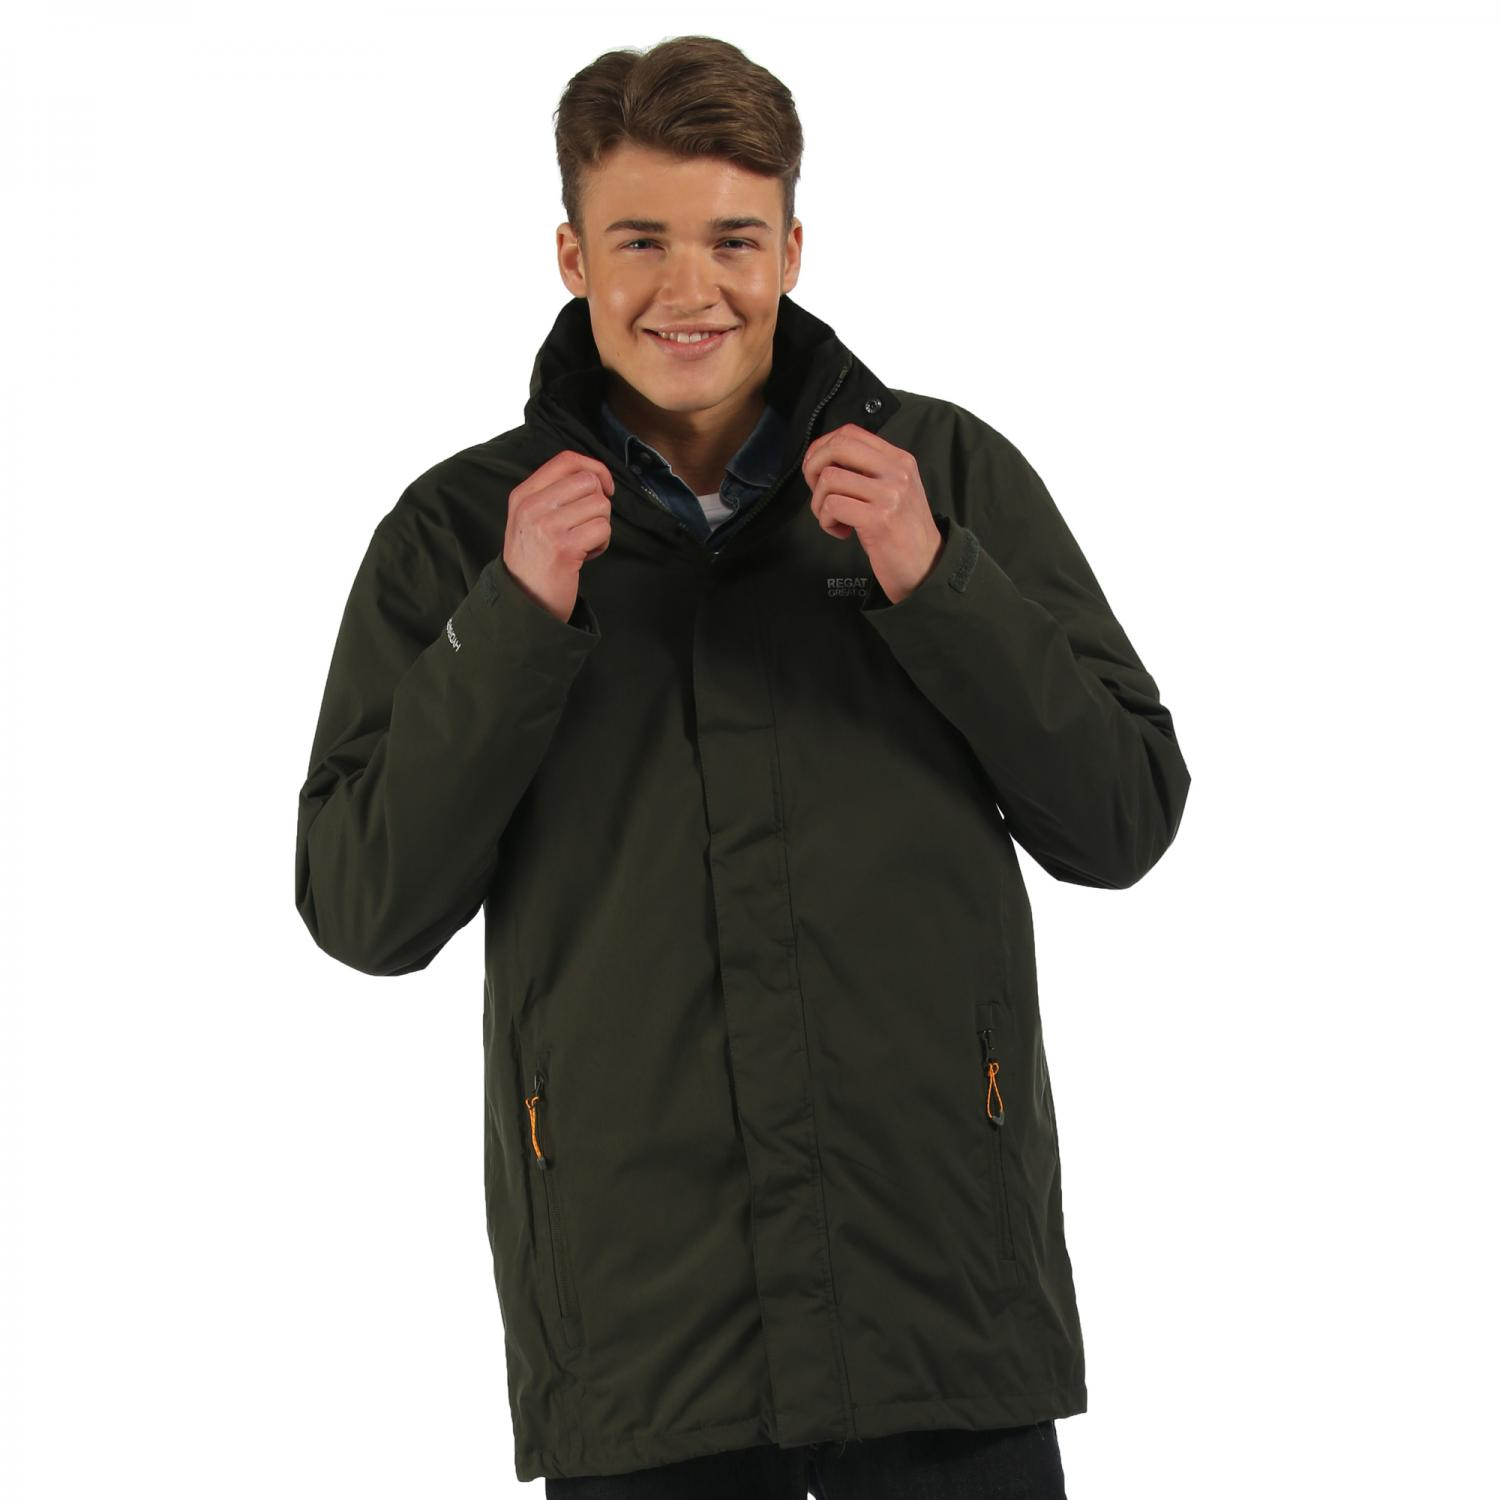 Telmar 3 in 1 Jacket Bayleaf Black